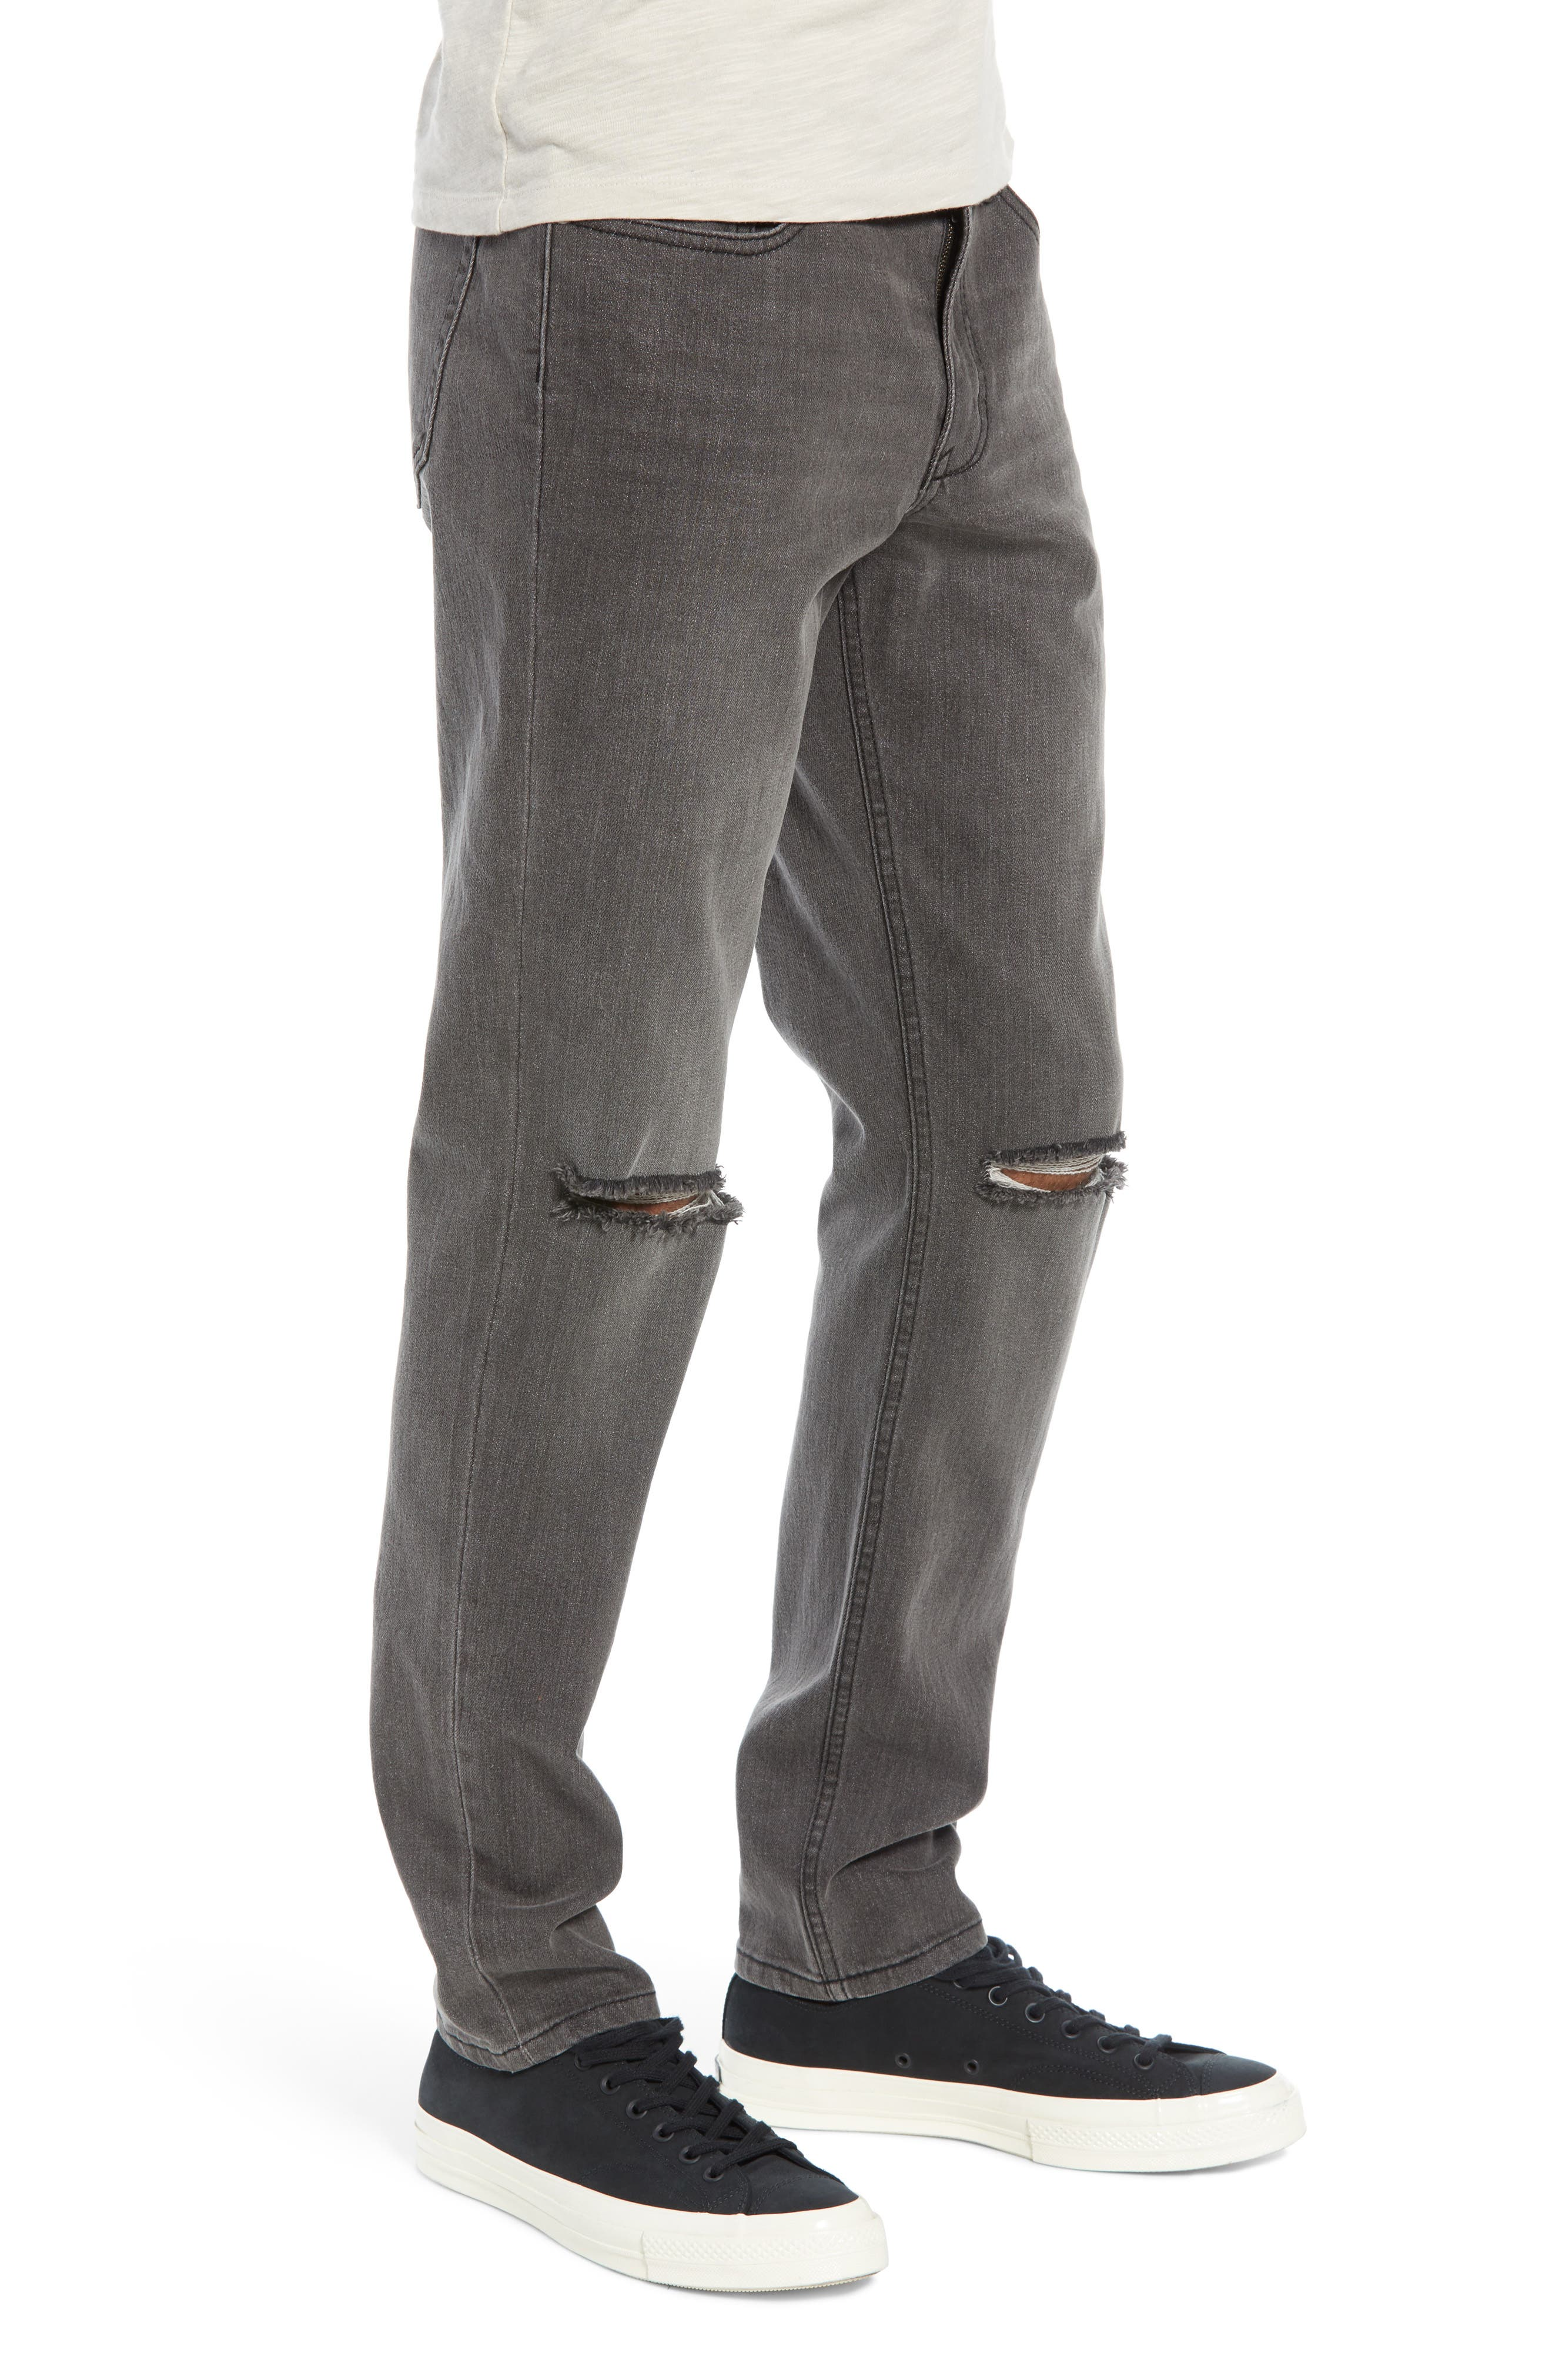 THE RAIL, Ripped Skinny Jeans, Alternate thumbnail 4, color, GREY CHRIS WASH